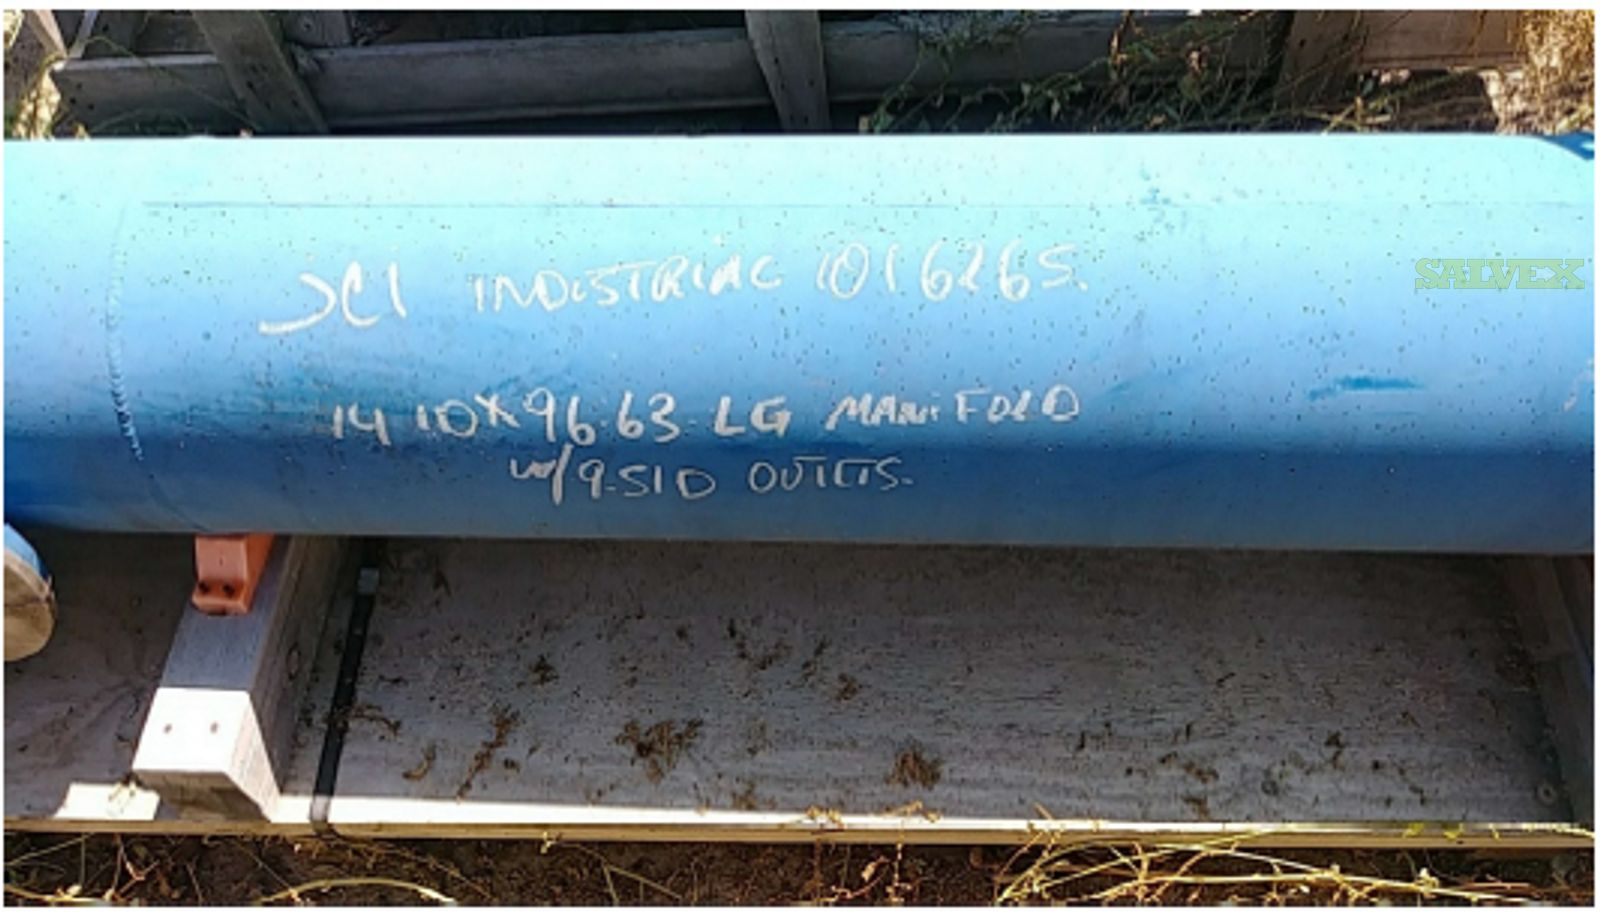 14 X 96-5/8 Long Pipe with 9 Outlets and Flanges